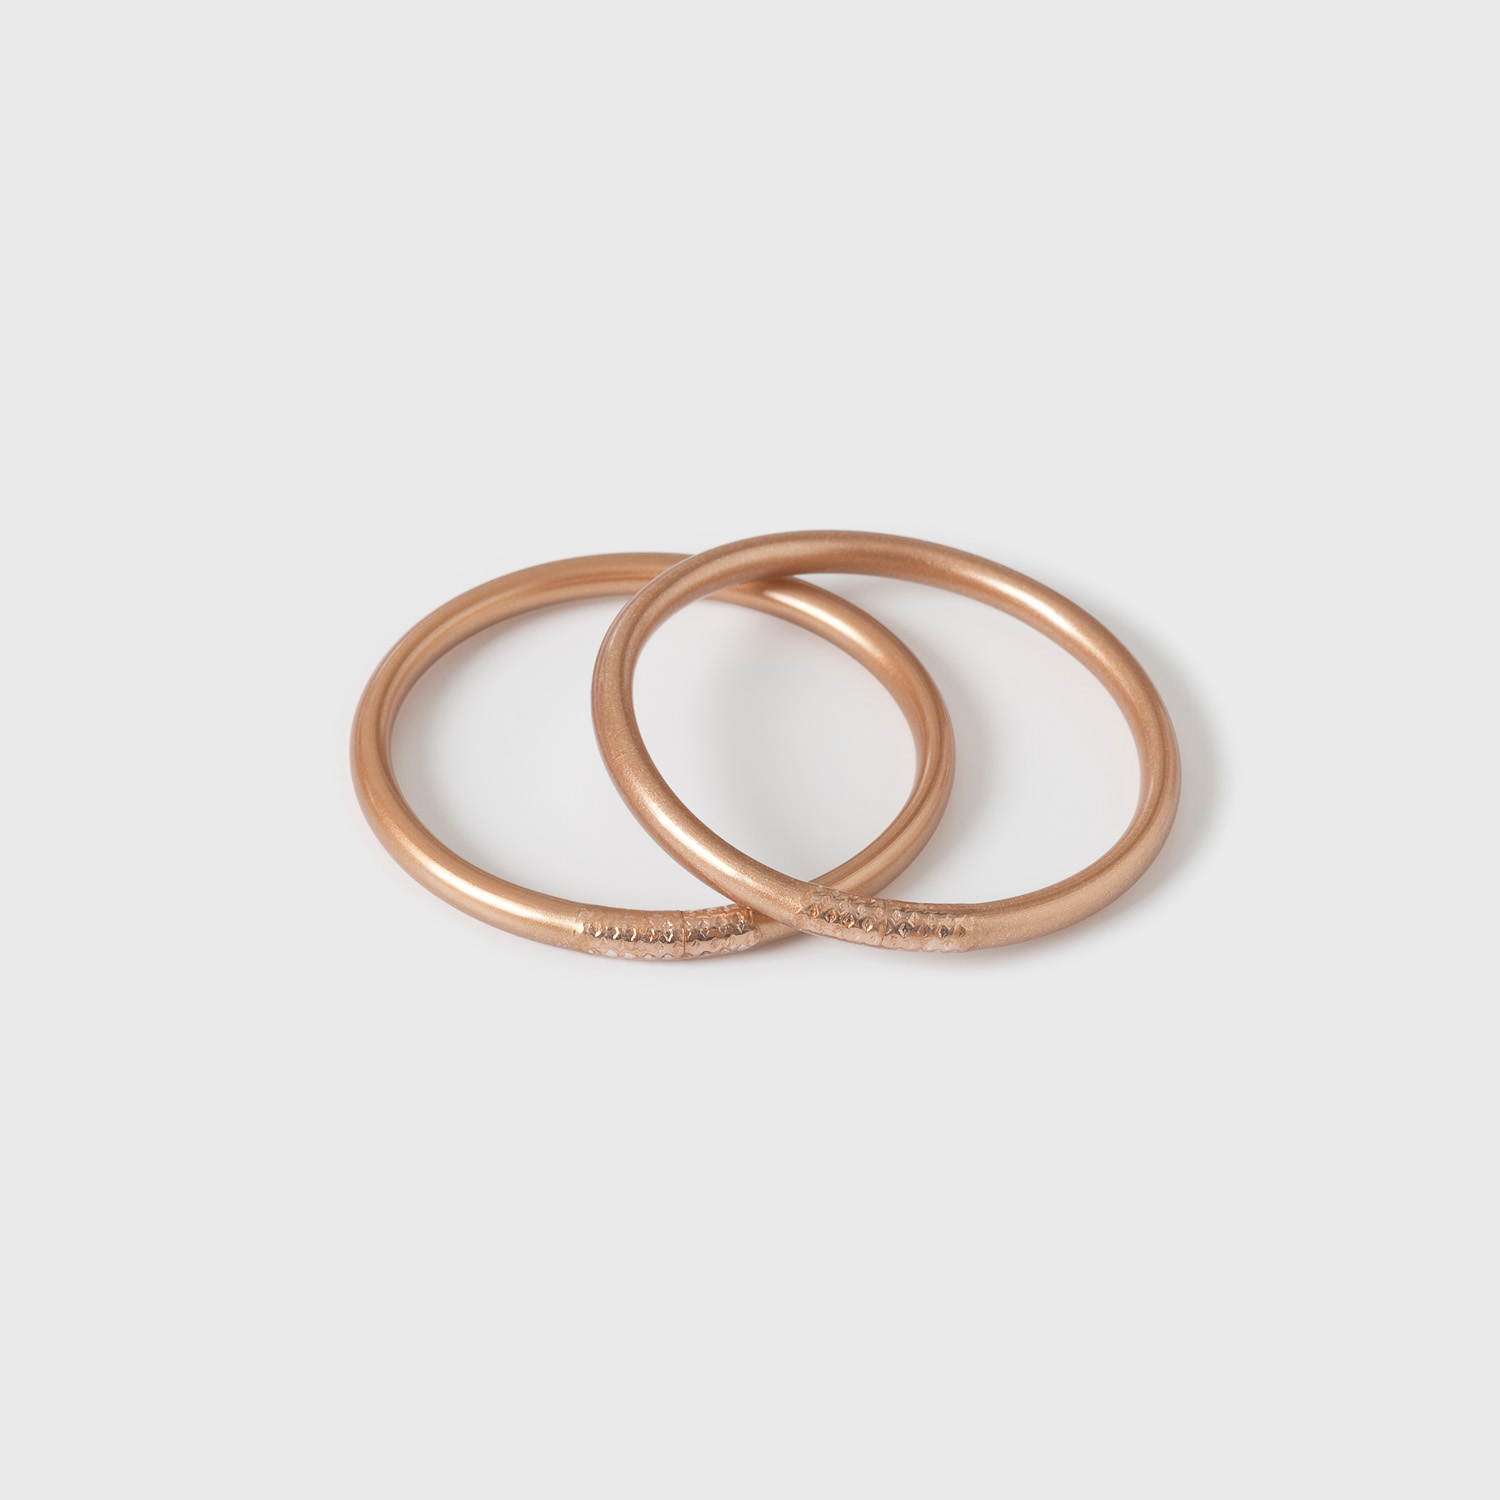 2 Copperleaf mantra bracelets; classic thickness